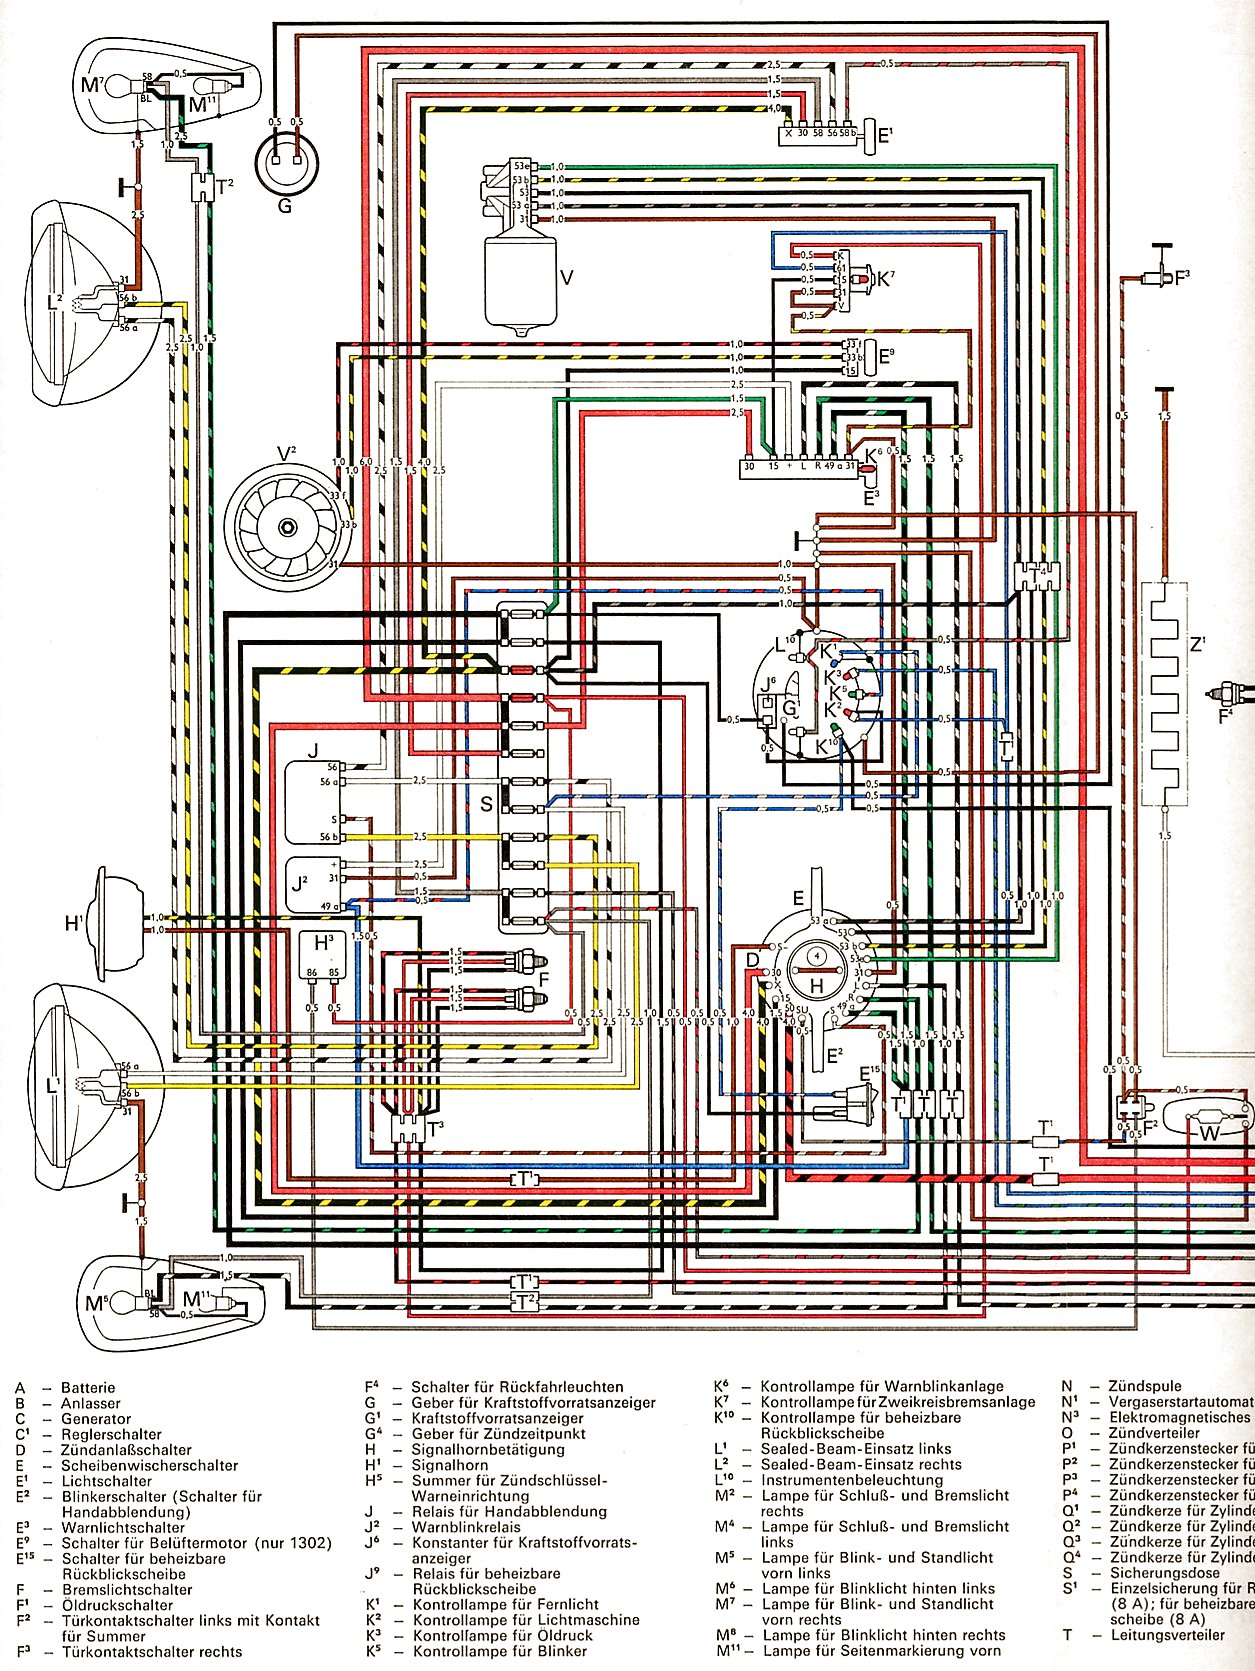 1300_and_1302_USA_from_August_1971 1 vw beetle wiring diagram 1974 1973 vw beetle wiring diagram 1964 VW Beetle Wiring Diagram at creativeand.co